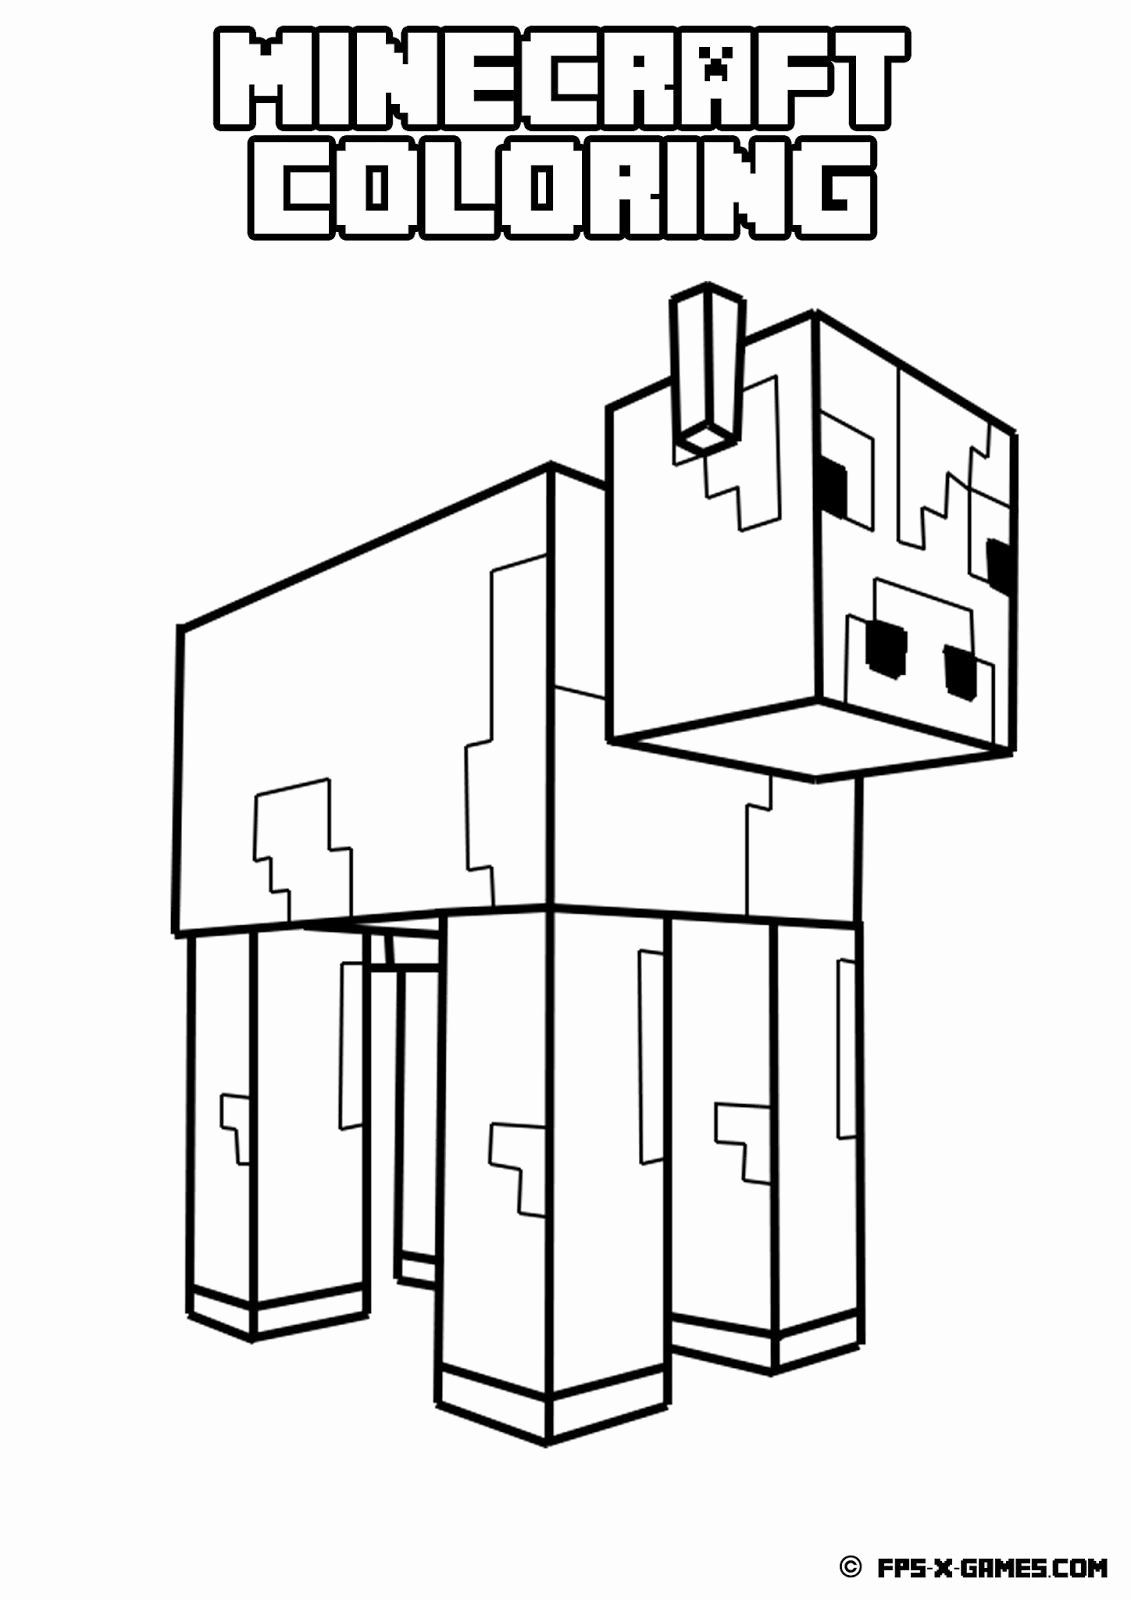 Engineering Drawing Book In 2020 Minecraft Coloring Pages Minecraft Printables Printable Coloring Pages